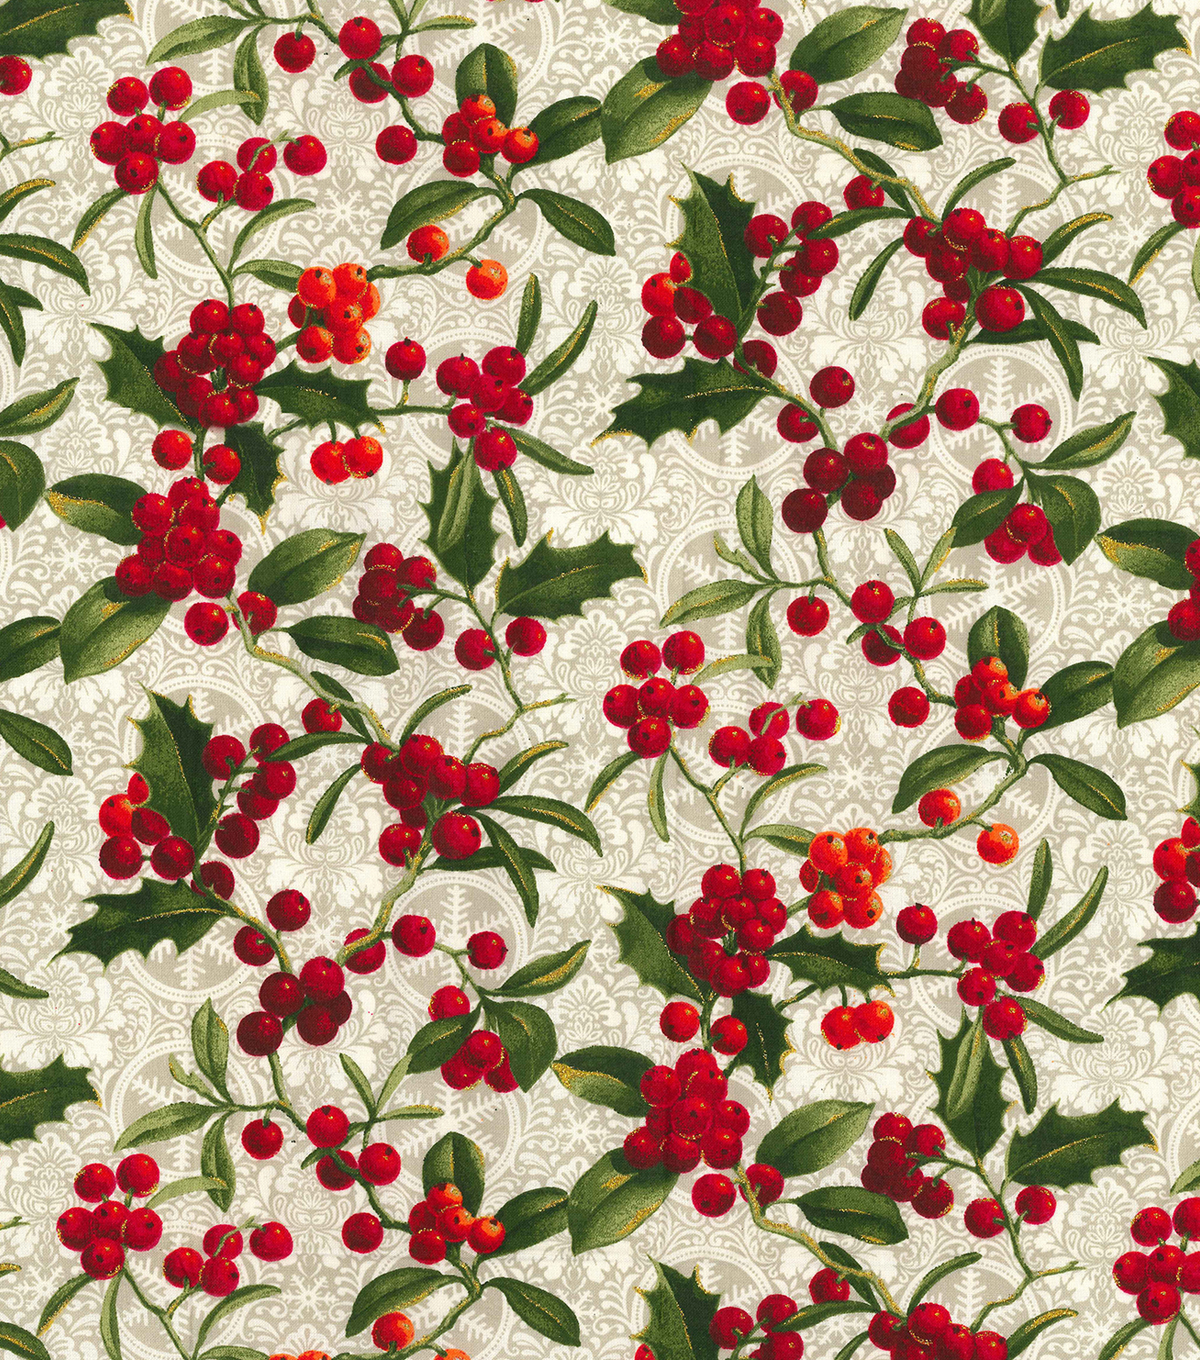 Christmas Cotton Fabric-Glitter Holly Leaves & Berries